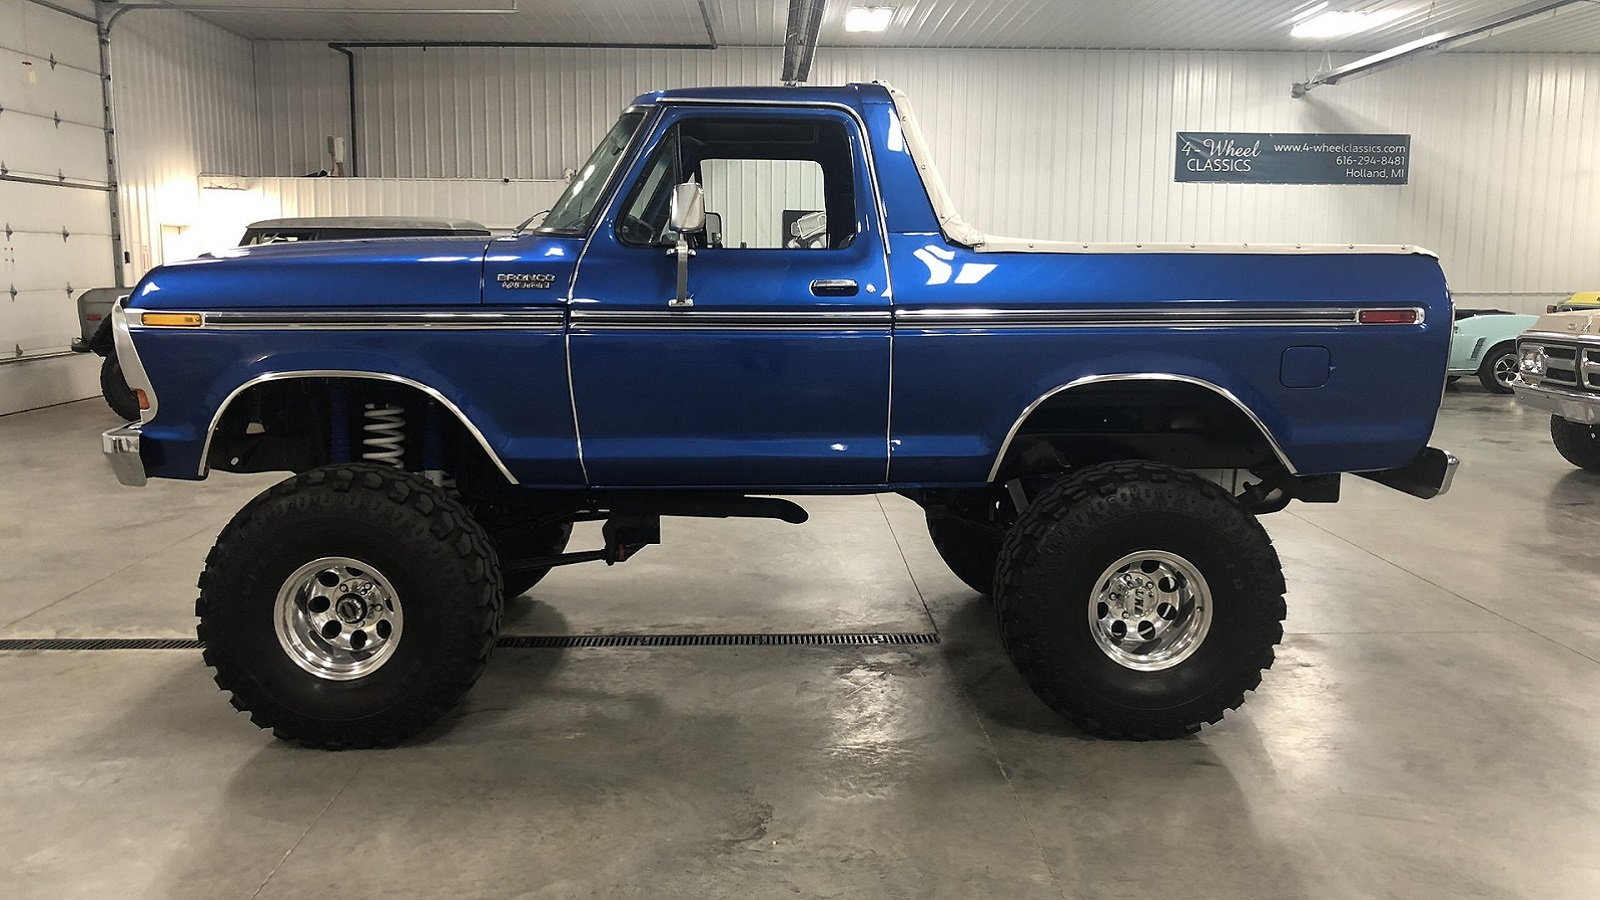 Flawless '78 Ford Bronco Has All the Right Stuff